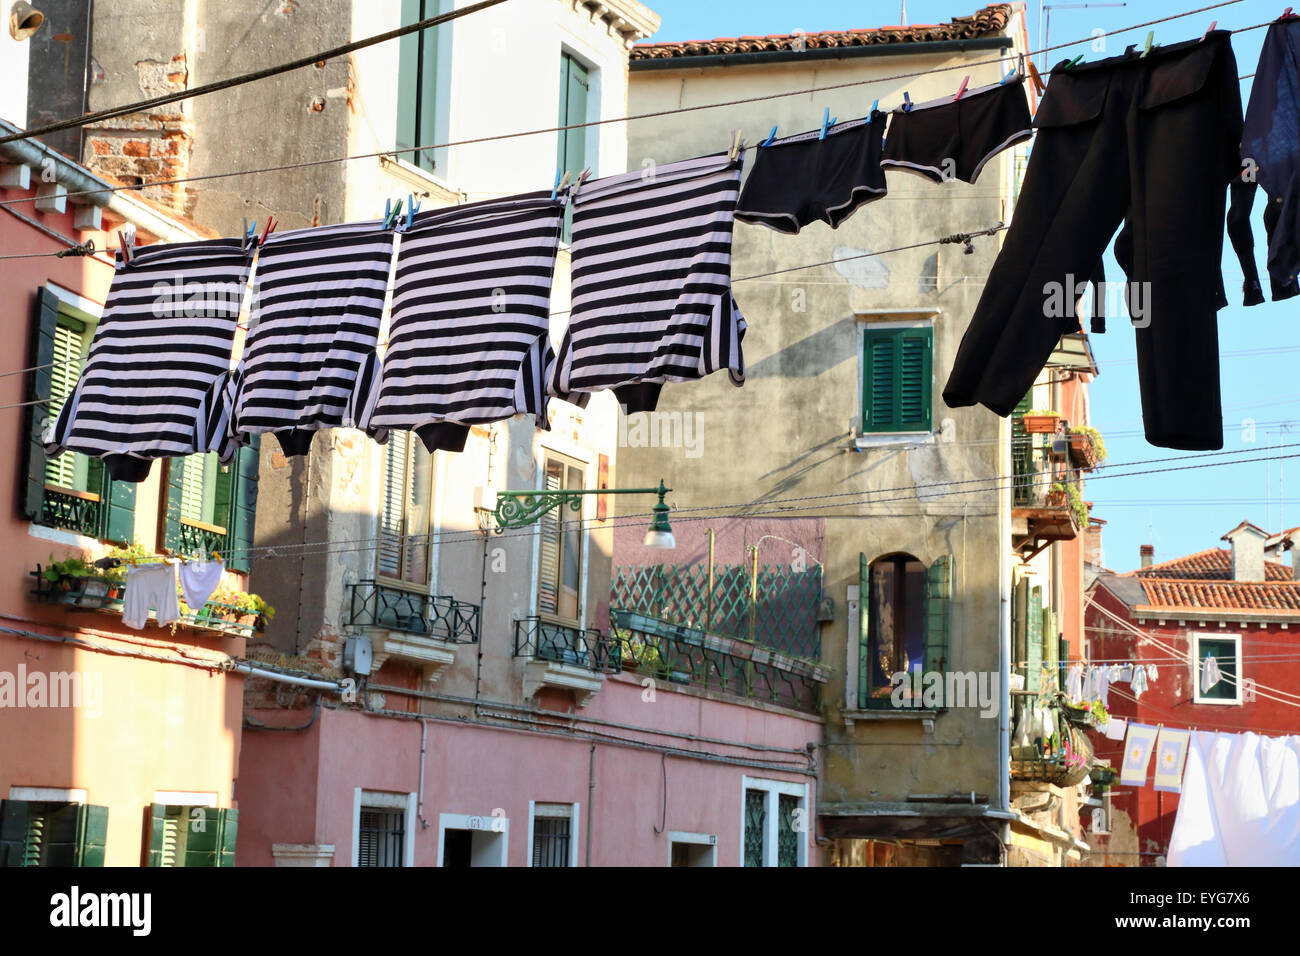 House of a gondolier. - Stock Image